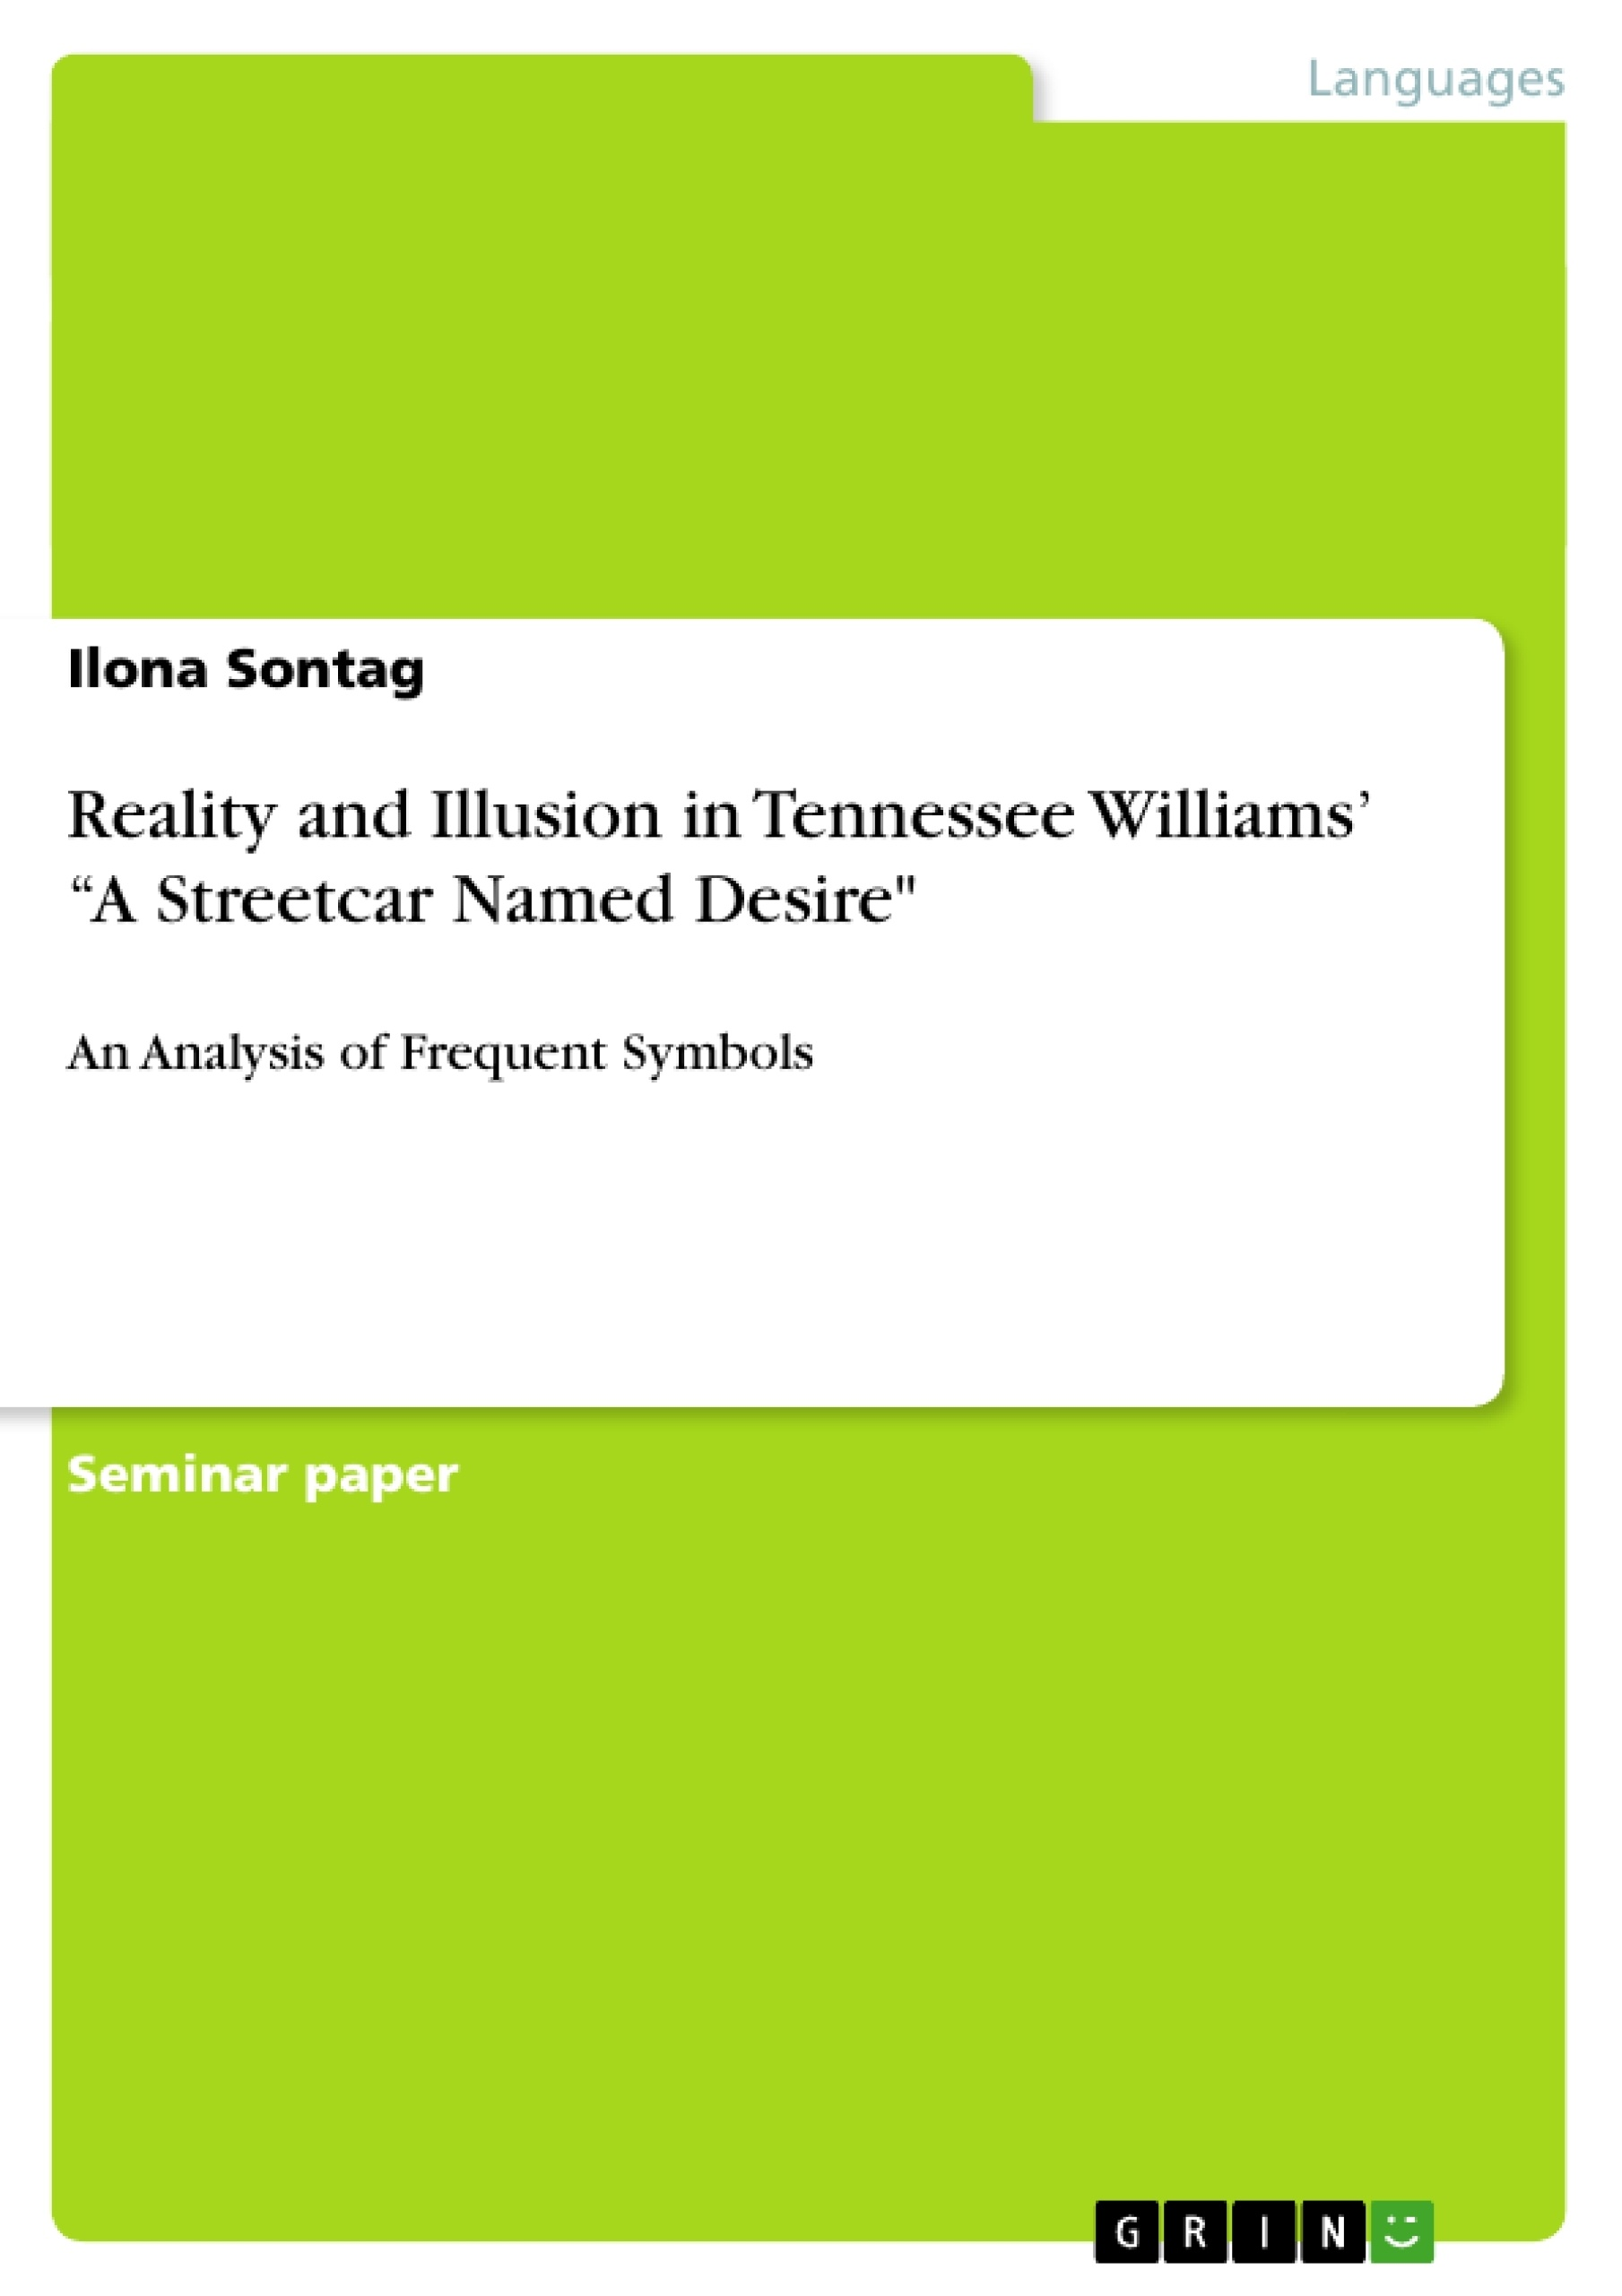 reality and illusion in tennessee williams a streetcar d reality and illusion in tennessee williams a streetcar d desire publish your master s thesis bachelor s thesis essay or term paper